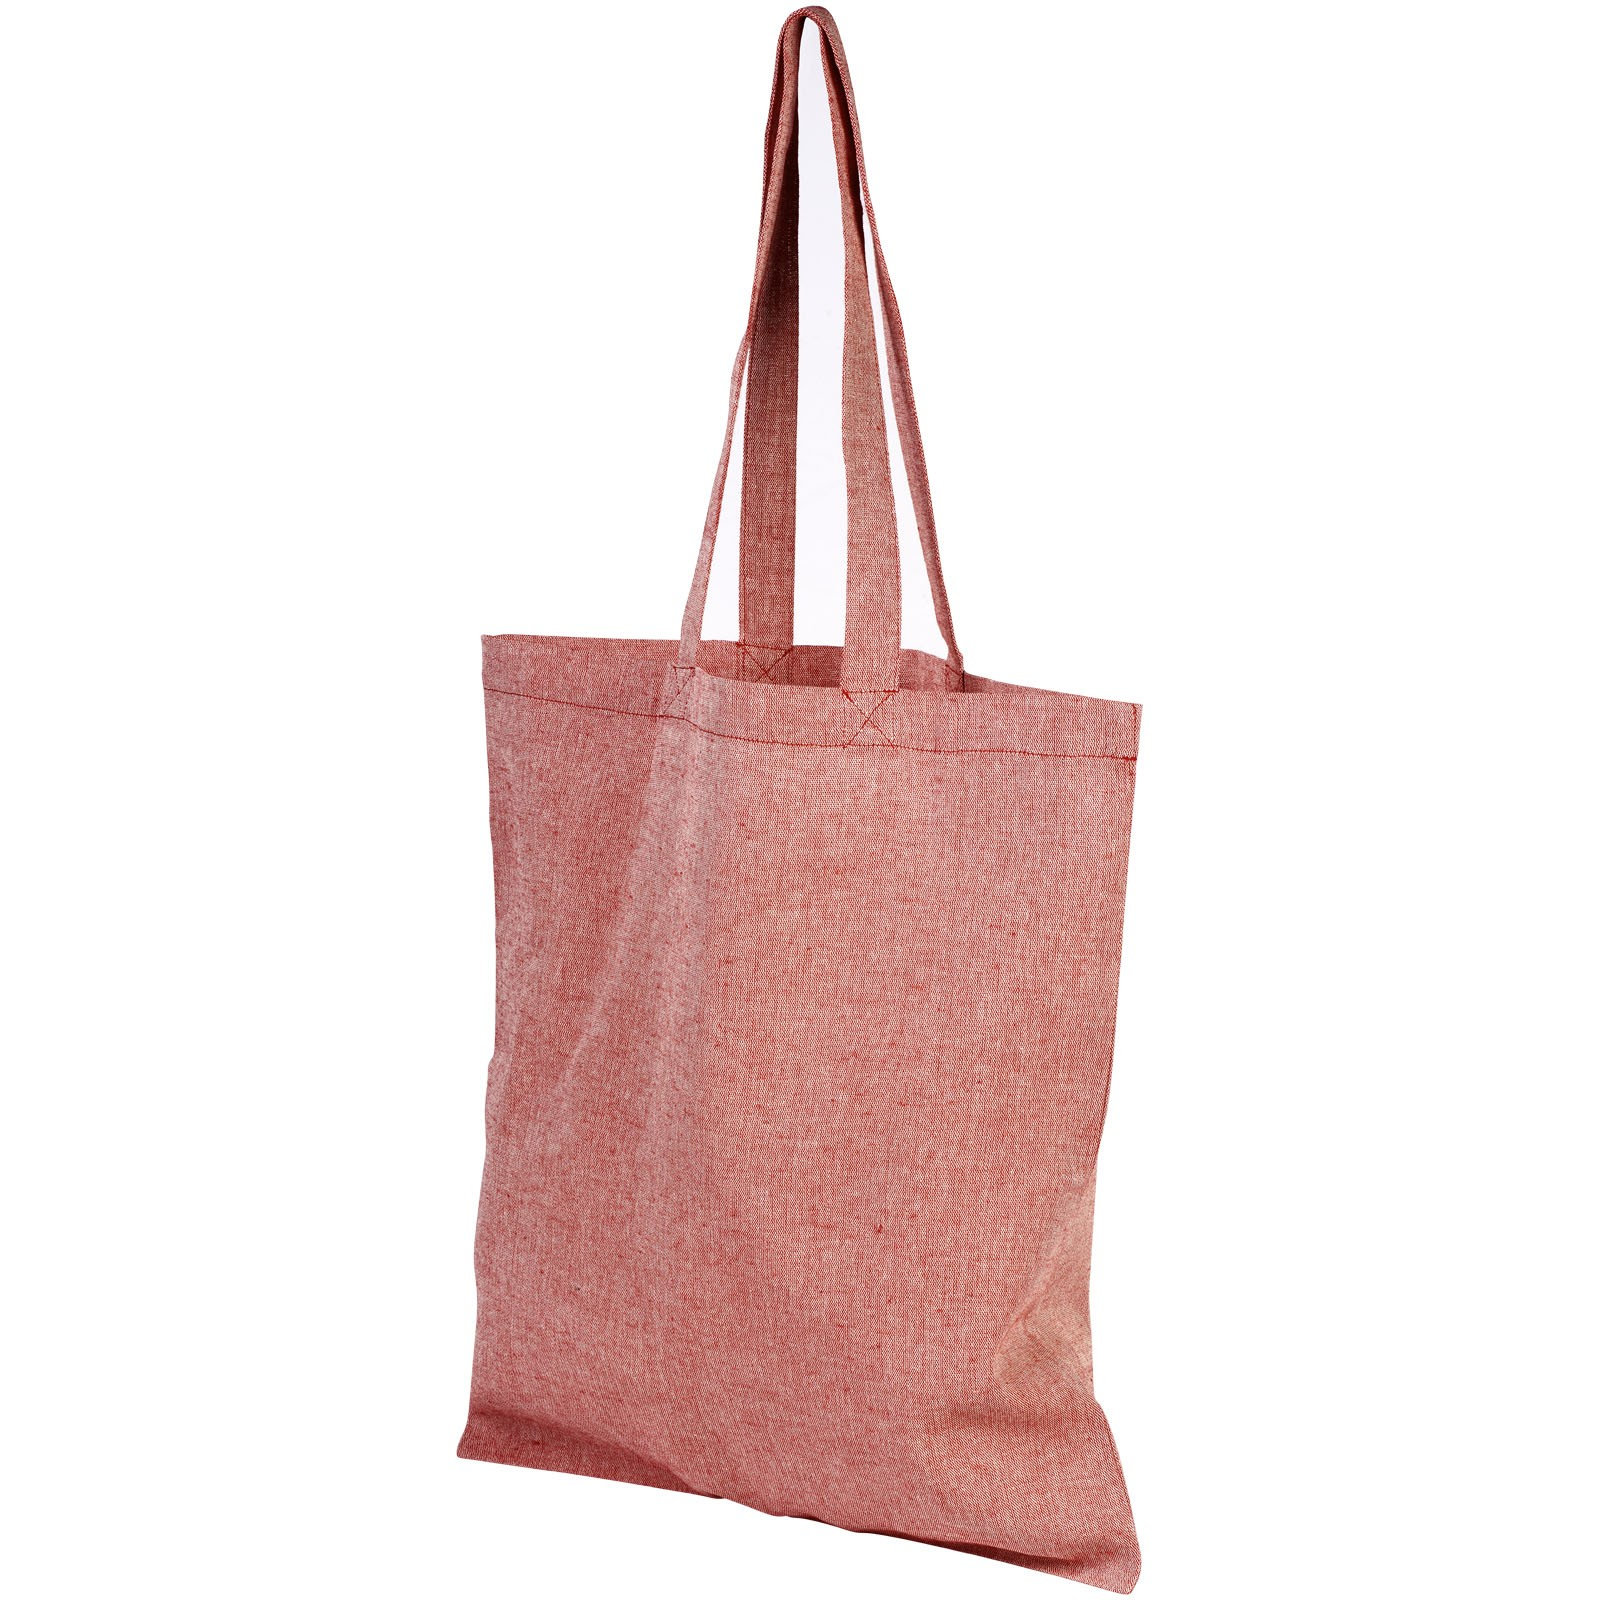 Pheebs 150 g/m² recycled tote bag - Heather red